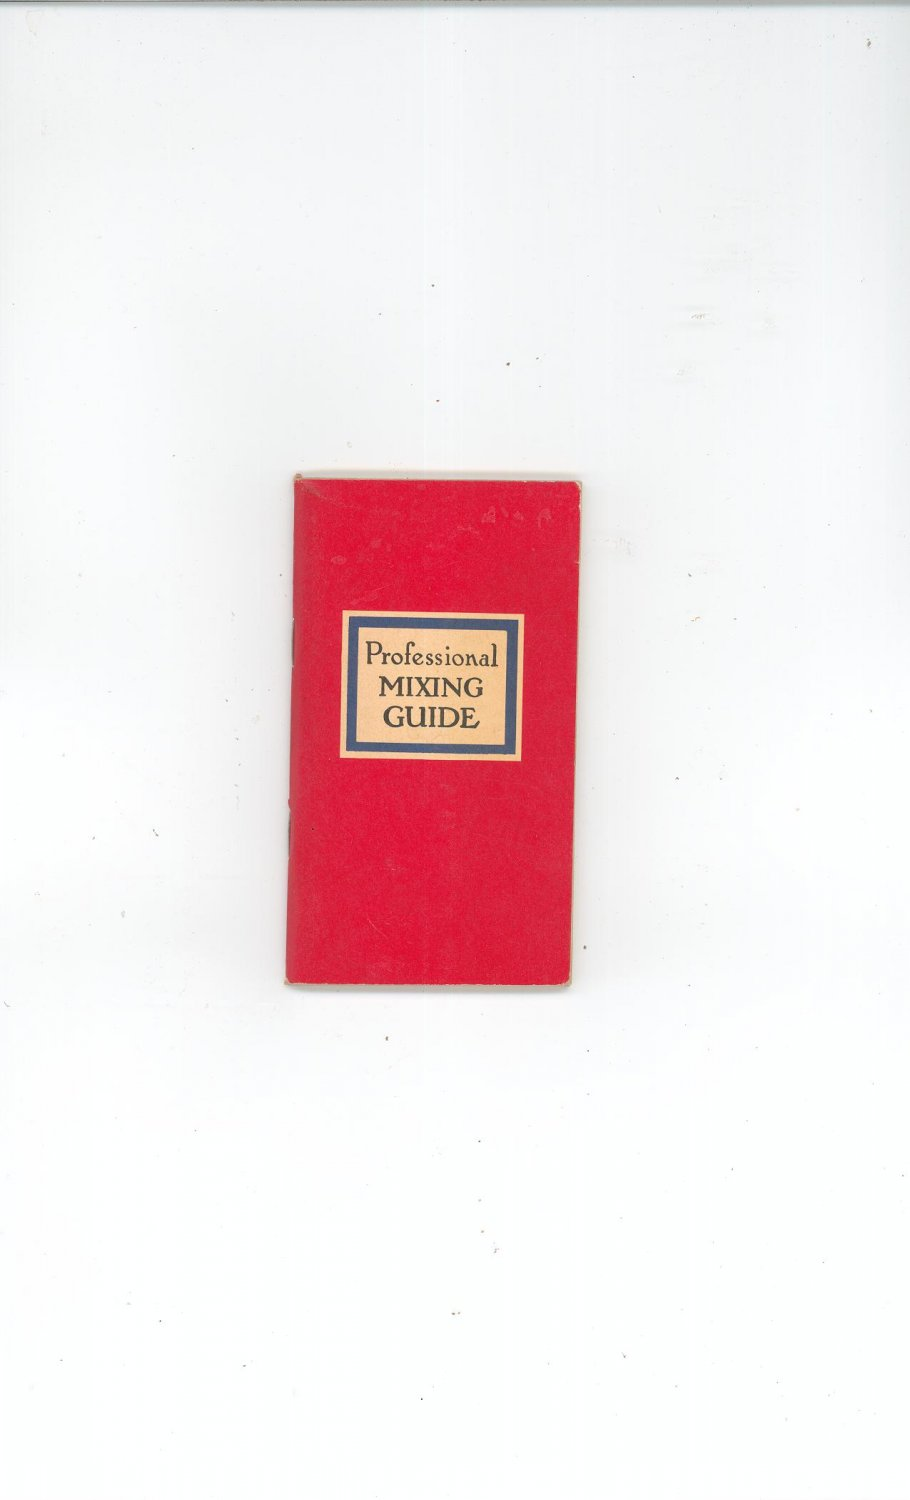 Very Nice Vintage Mini Professional Mixing Guide by The Angostura Wuppermann Corp. 1964